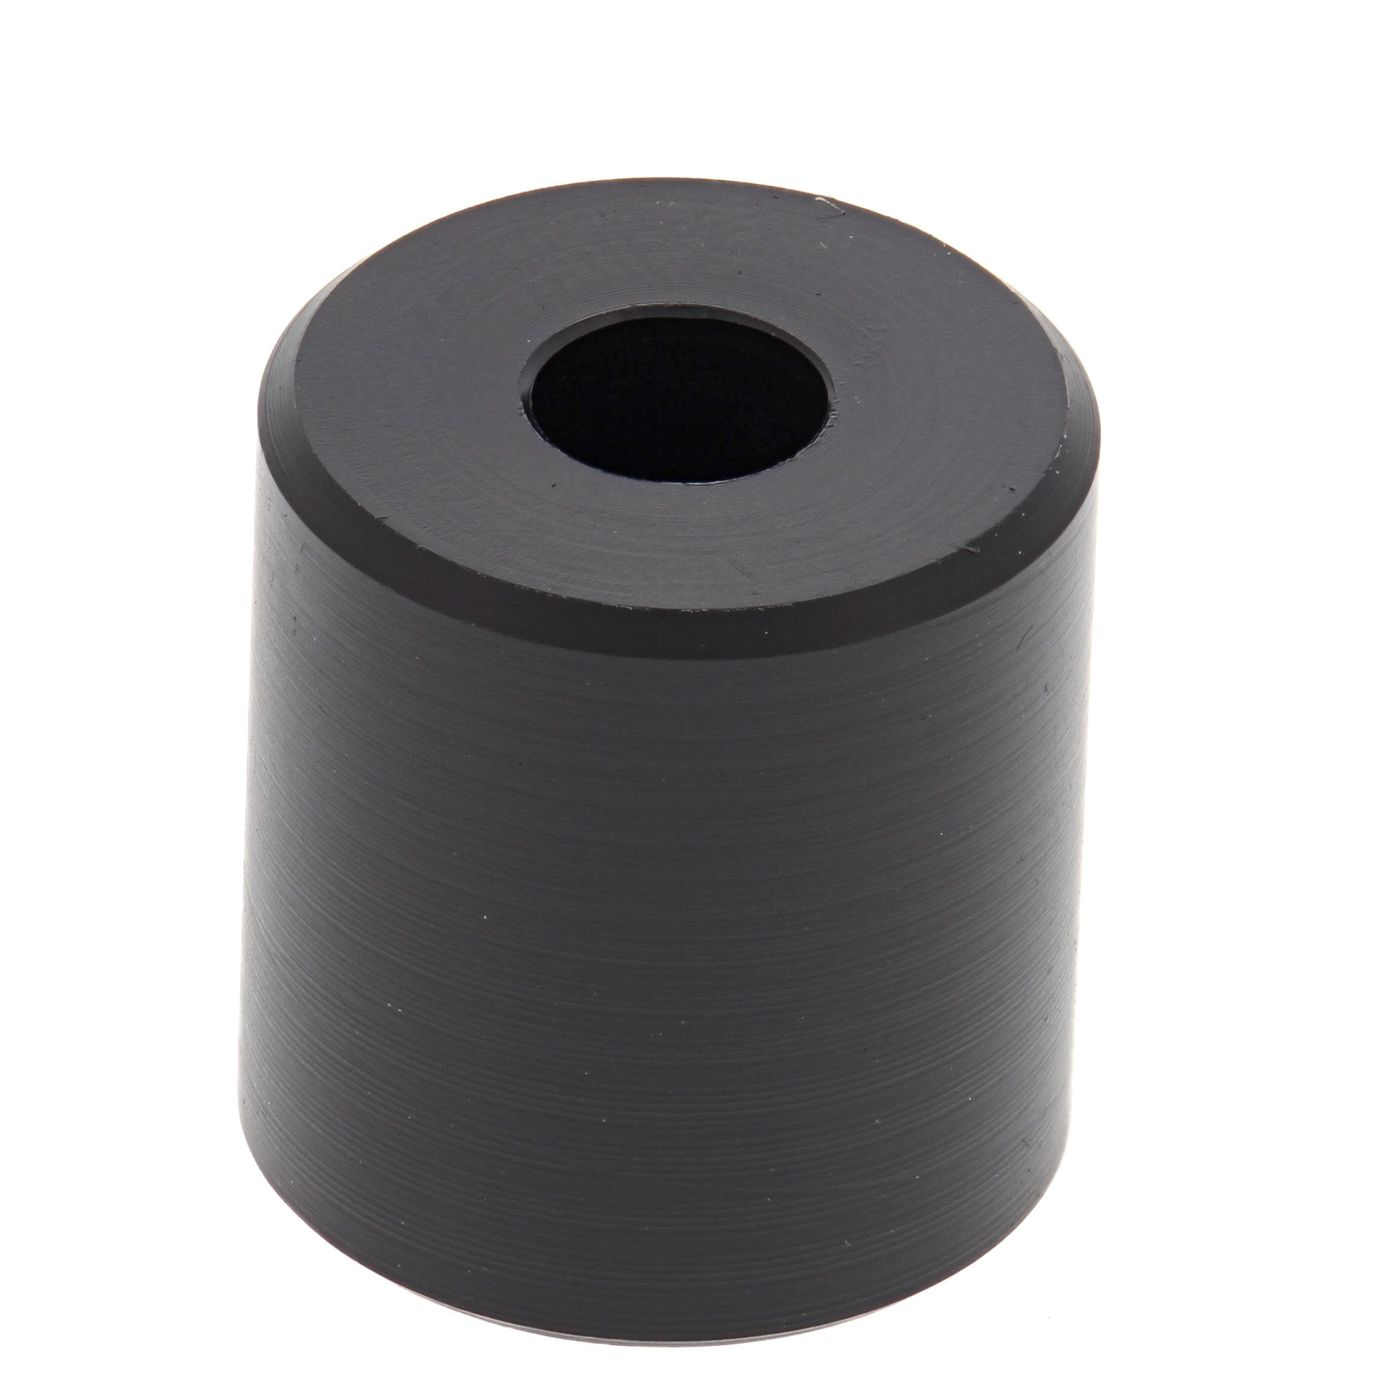 Wrp Chain Rollers - WRP795013 image